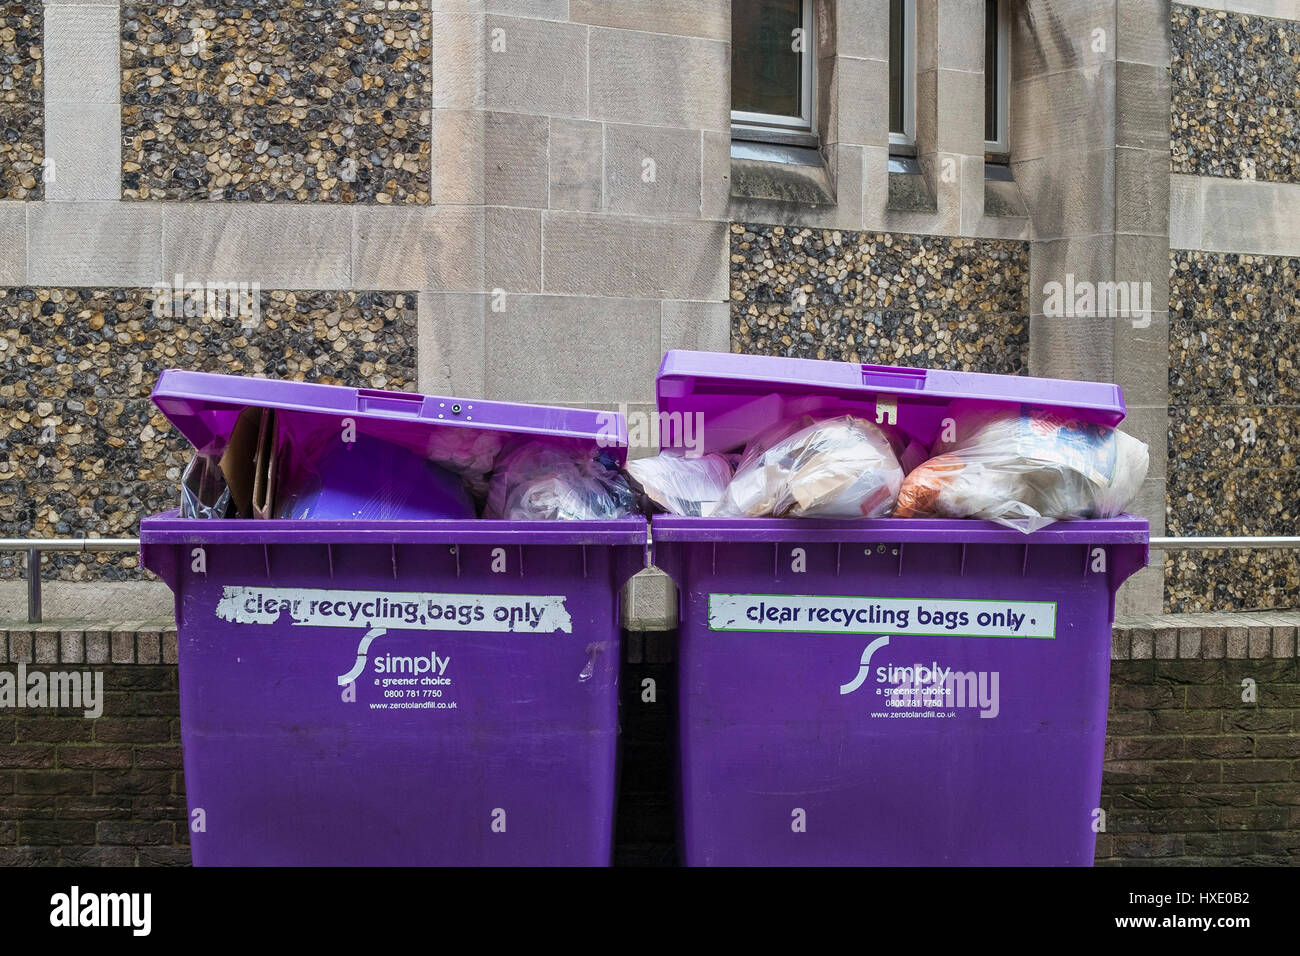 Recycling Bins Garbage Rubbish Disposal Green issues London - Stock Image